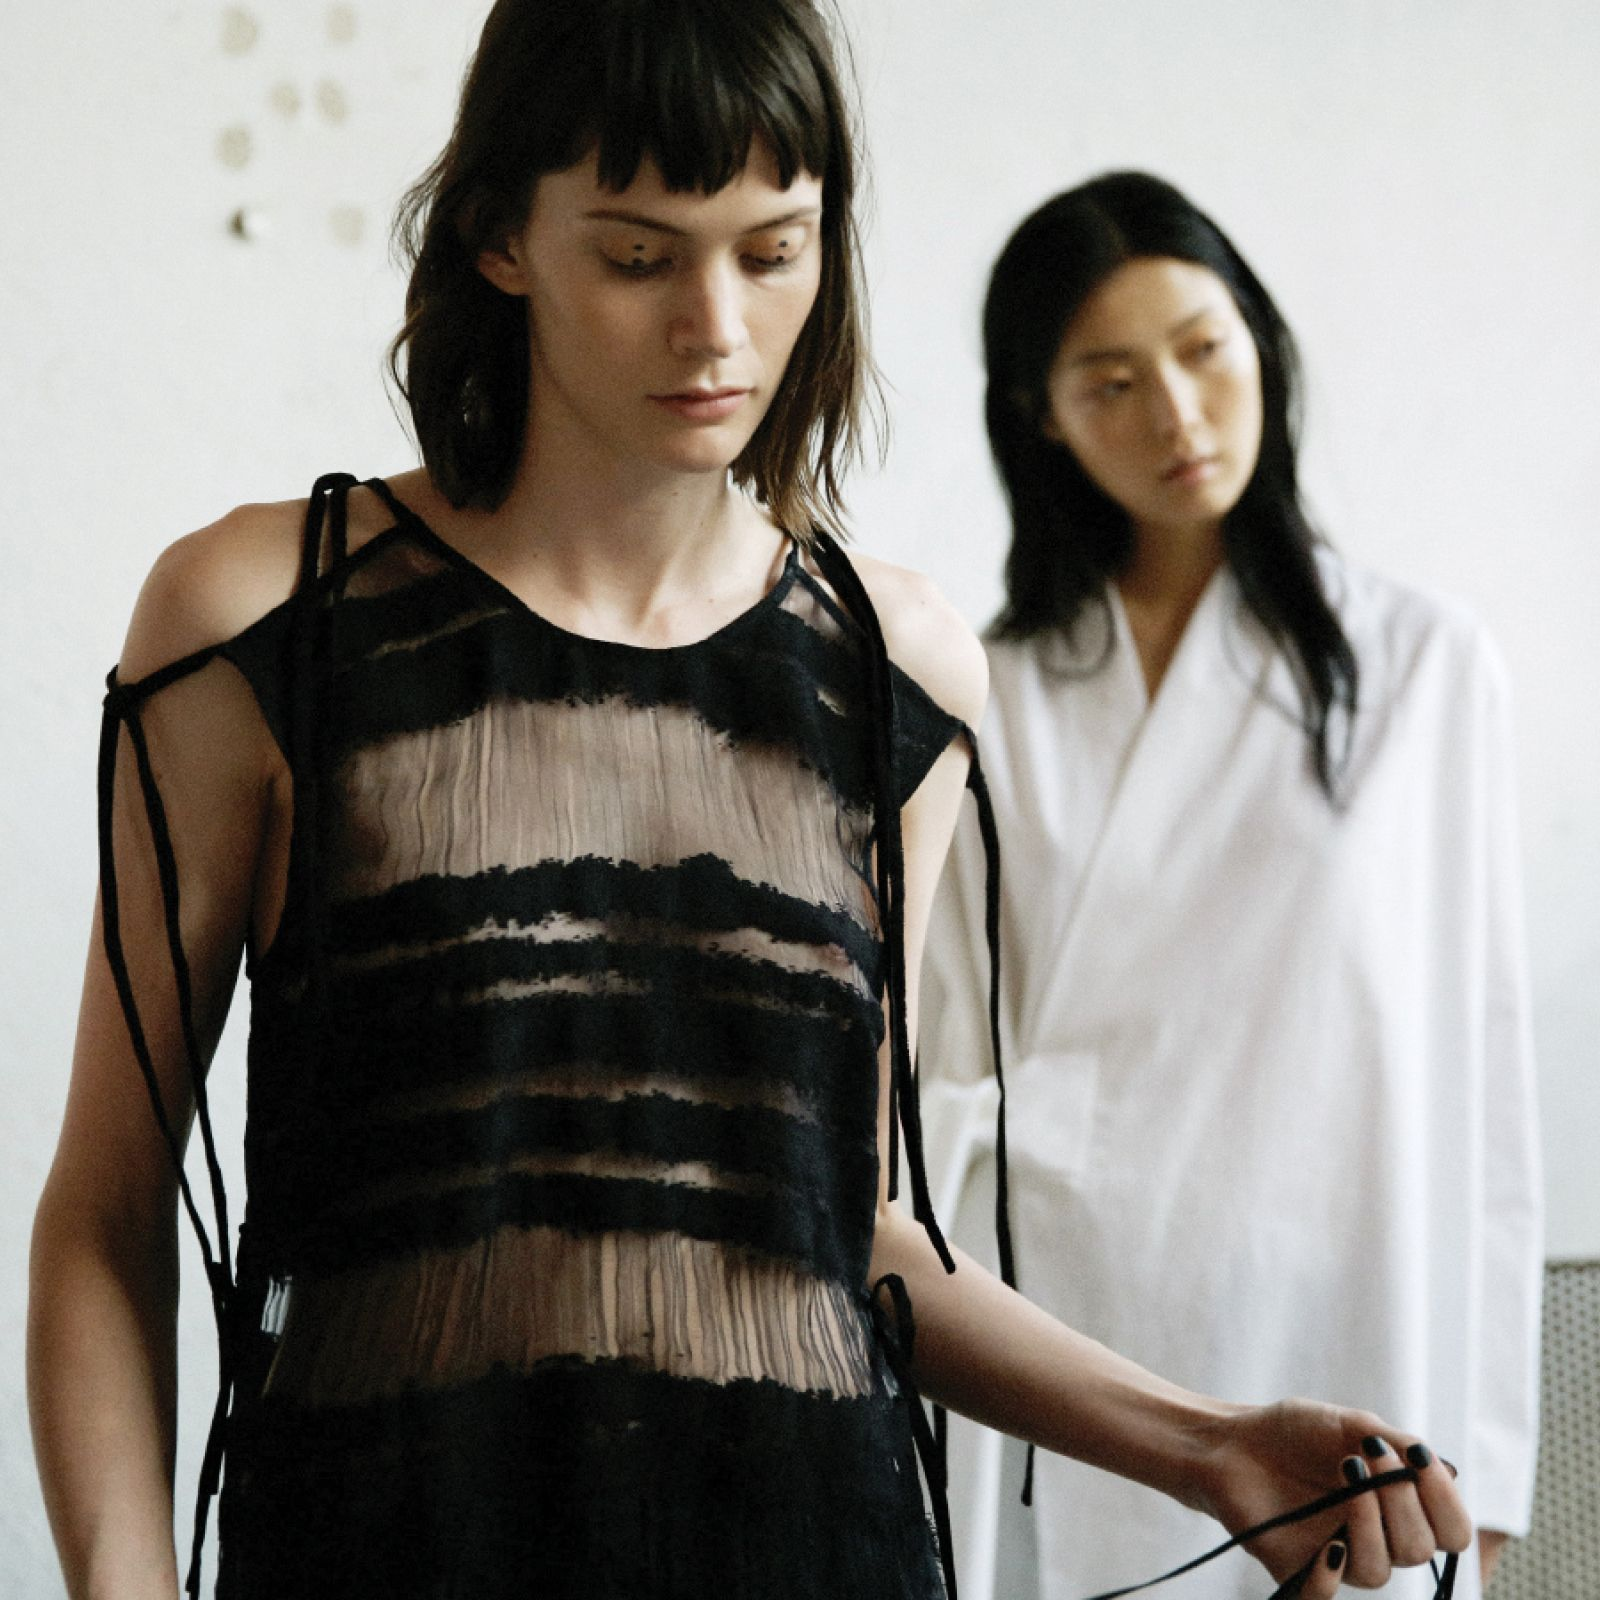 Damir Doma Women's SS16 Collection Available Online: Torino Top With Laces And Jahia Wrap Jacket. https://www.instagram.com/p/BEEP5aXp-3_/?taken-by=damirdomaofficial